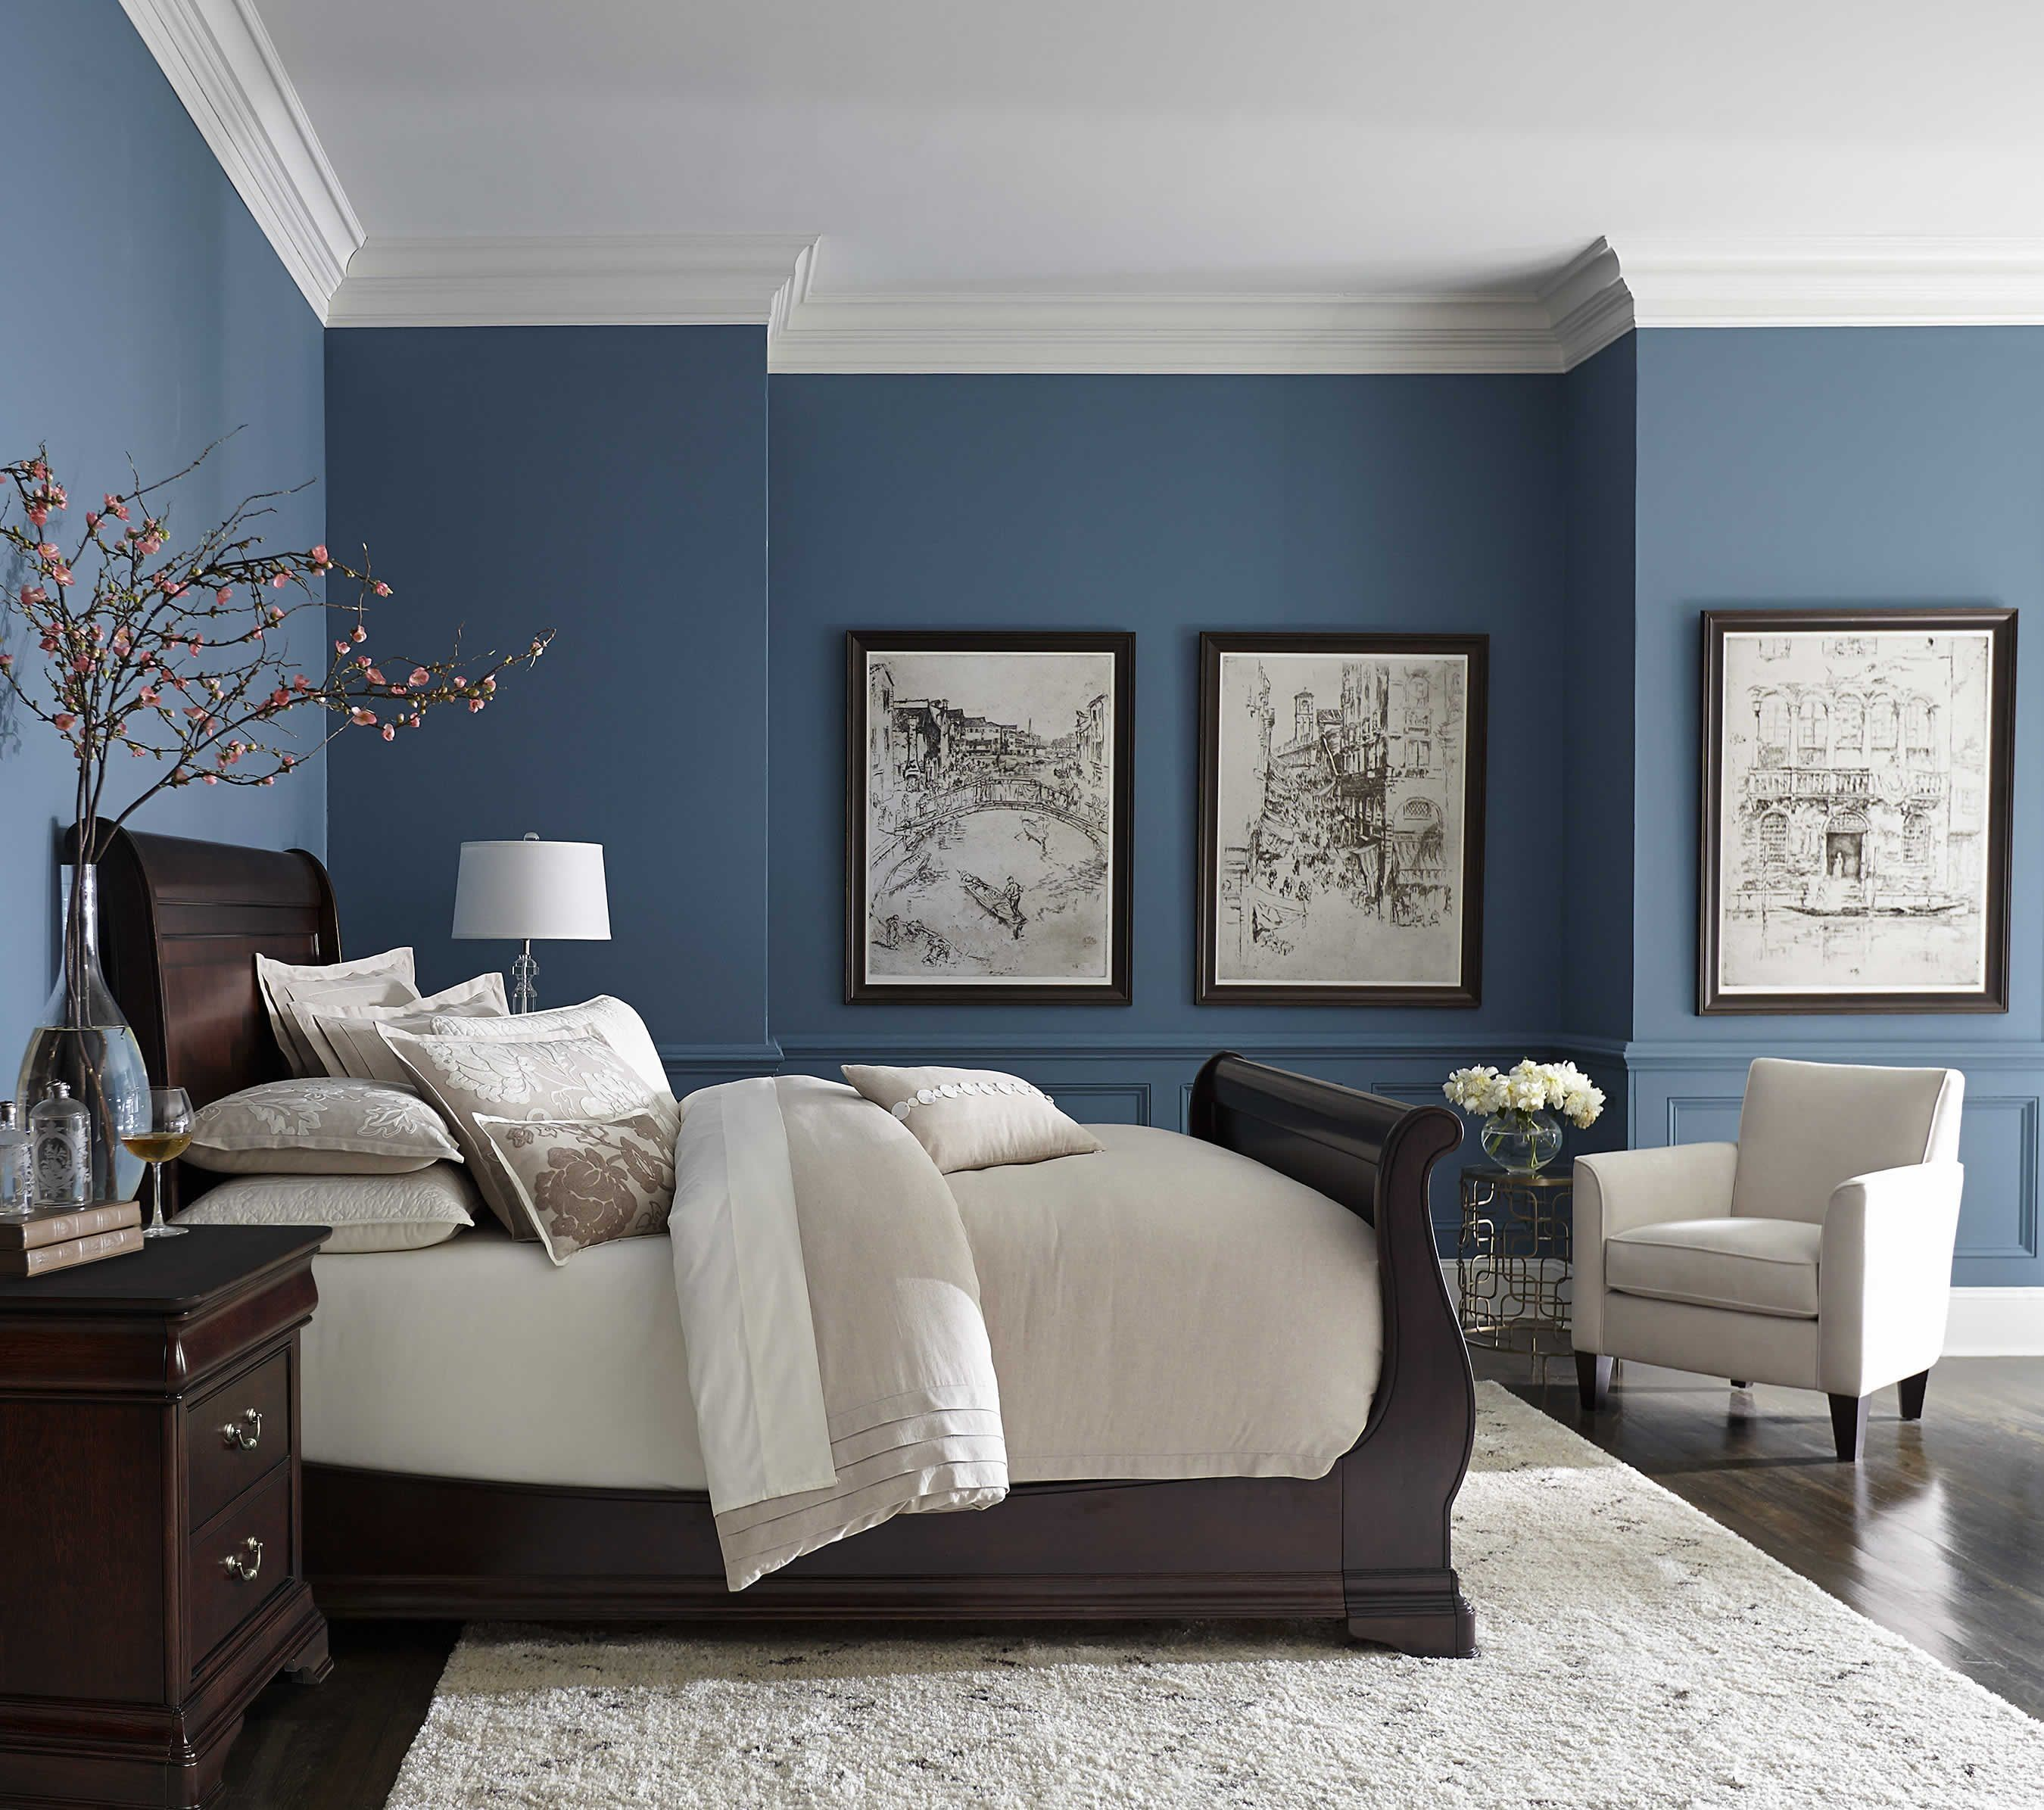 30 Inspiration Photo of Bedroom Furniture Colors | Small ...